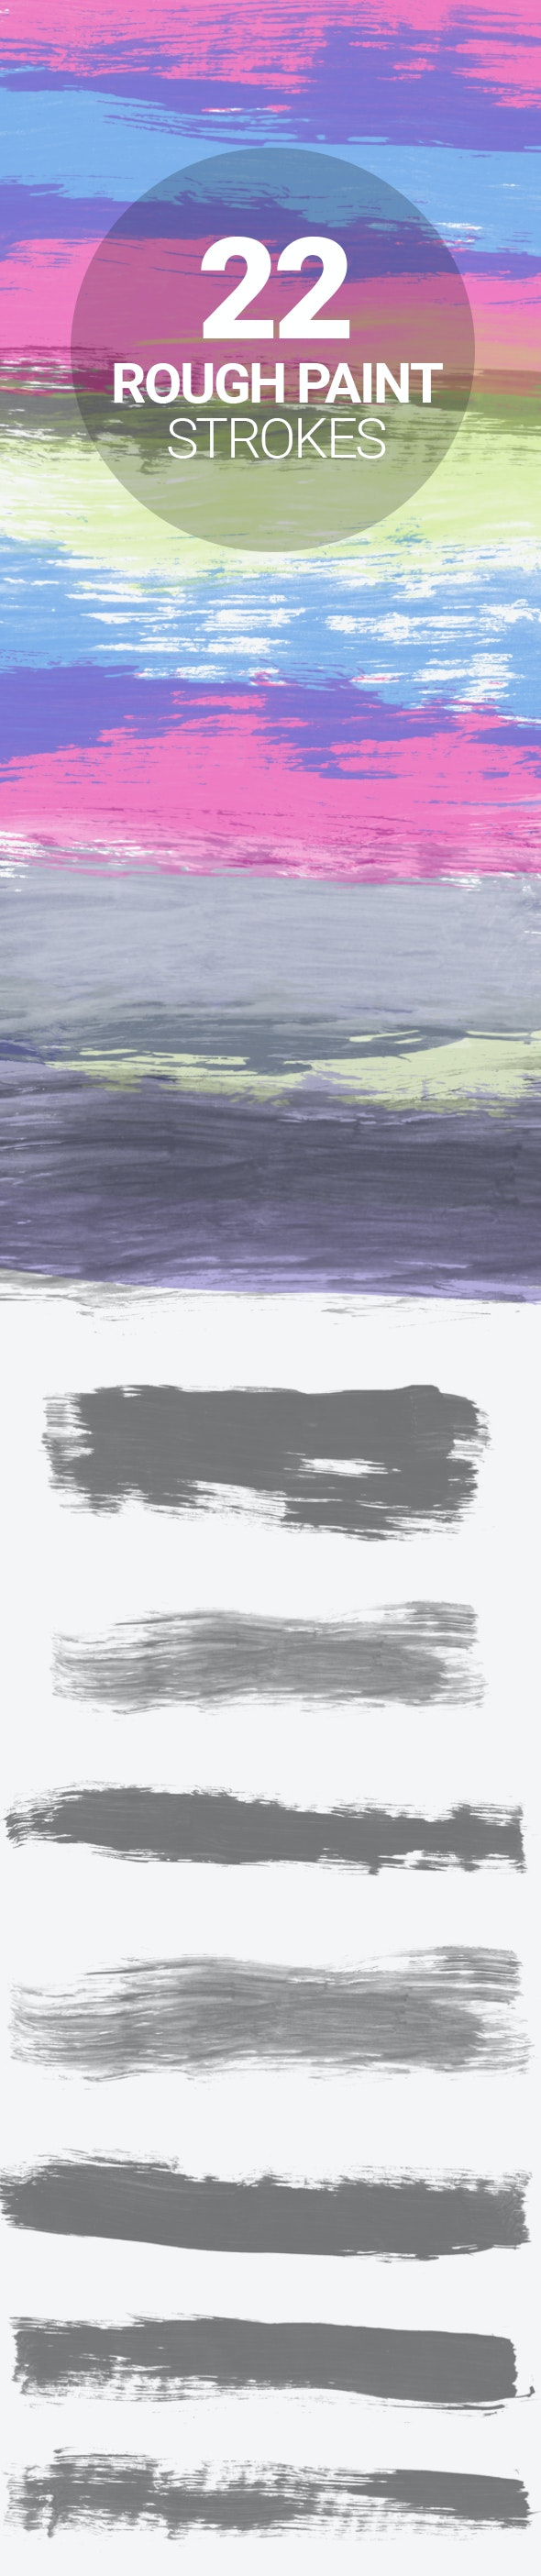 22 Rough Paint Strokes - Artistic Brushes